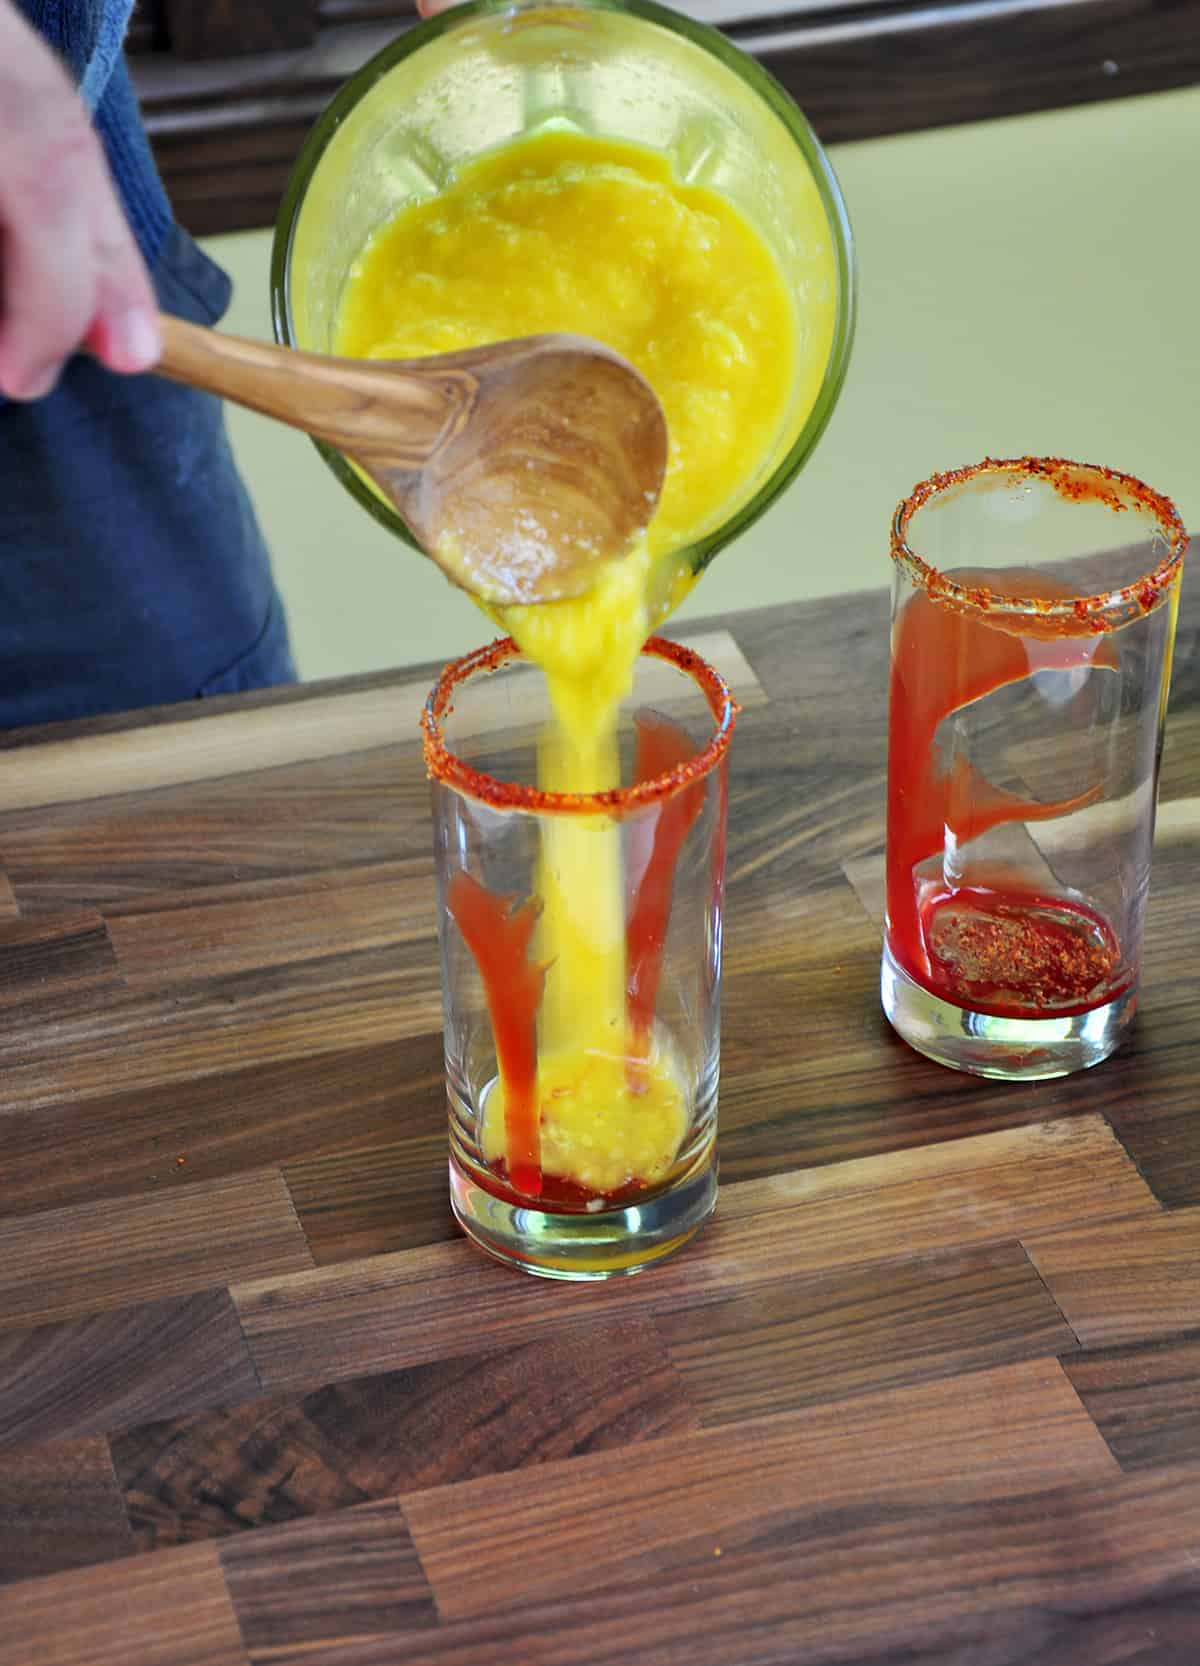 Pouring Mango mixture into a glass that has already been rimmed and has chamoy in the bottom.